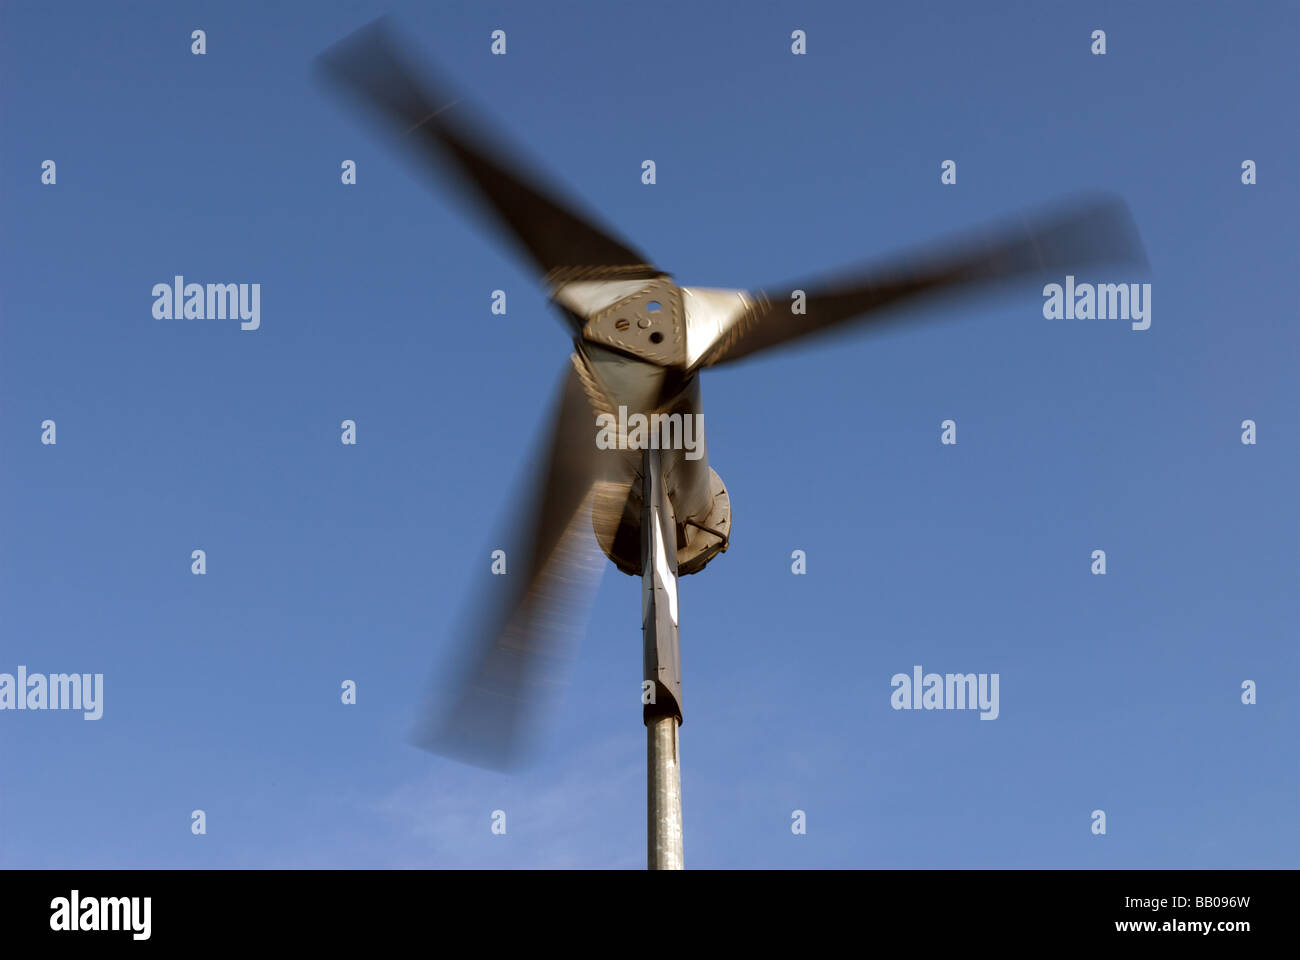 6KW wind turbine manufactured by Proven Energy, suppling electricity